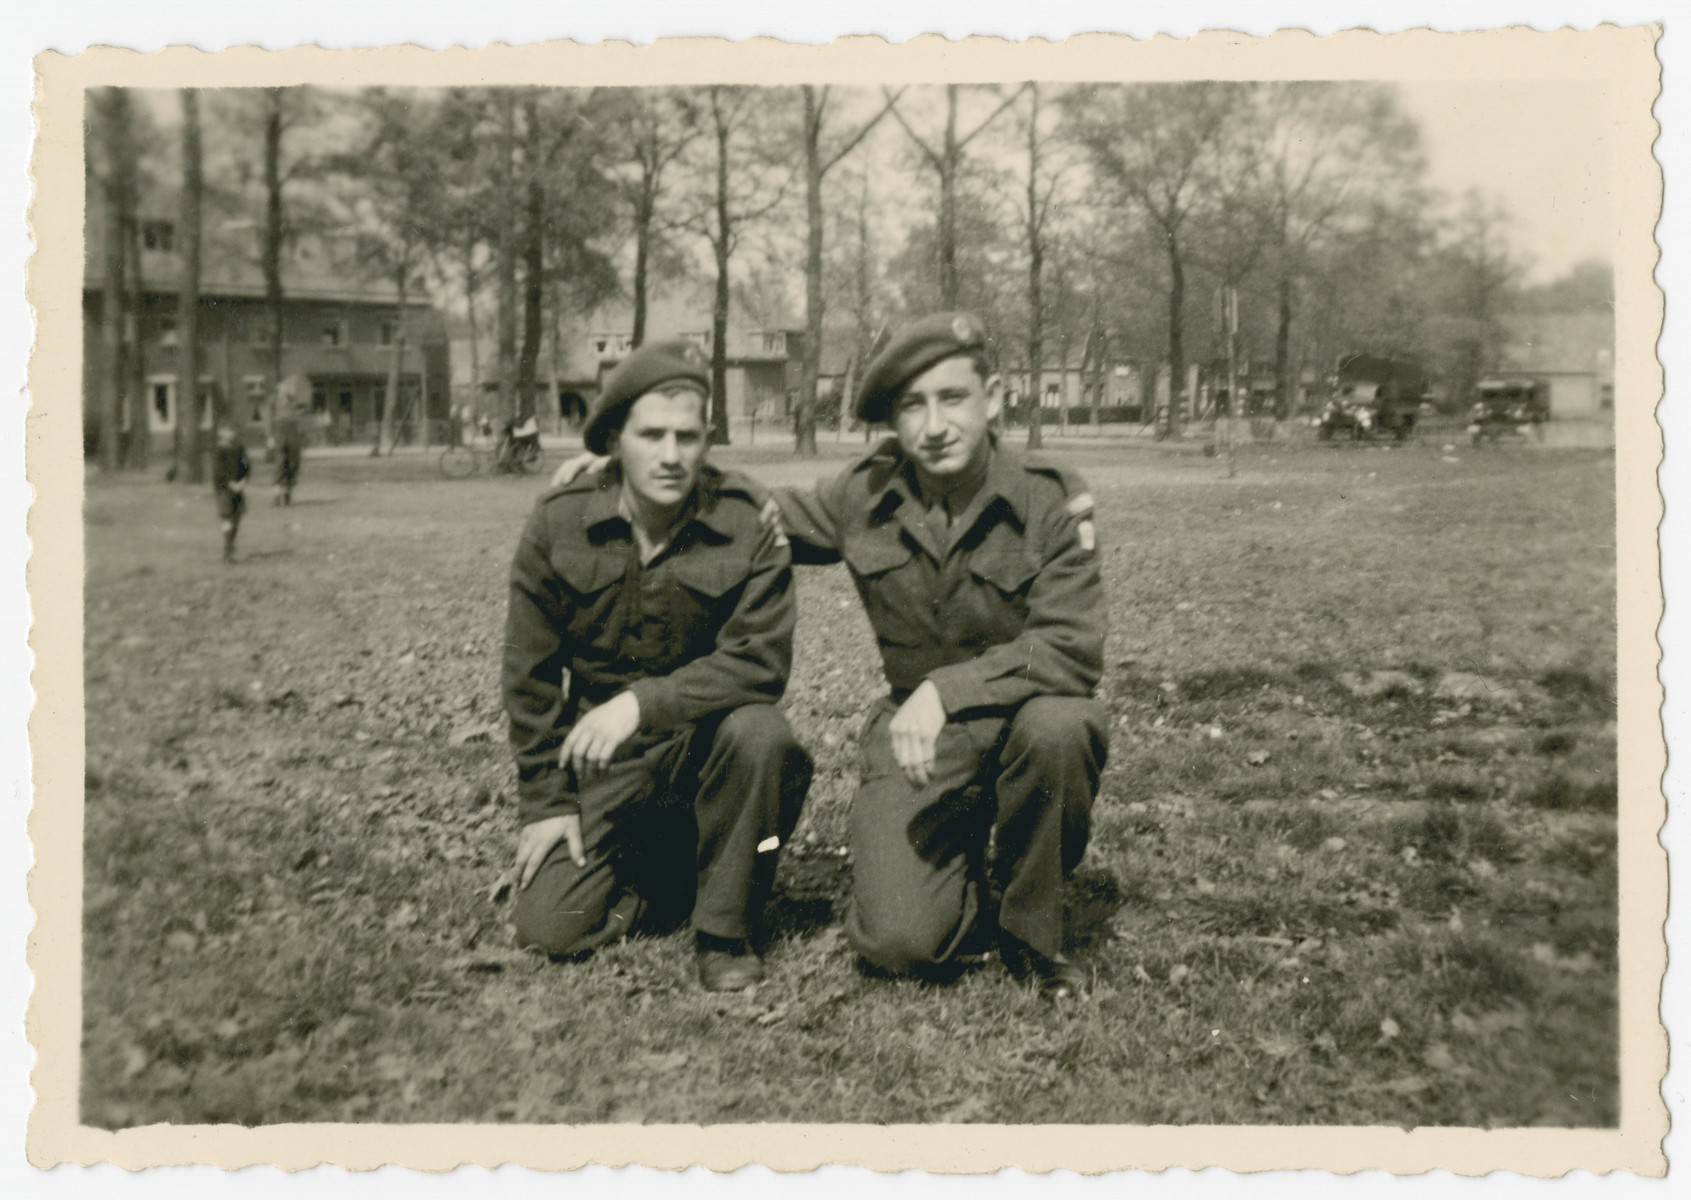 Two Jewish Brigade soldiers pose together on a grassy field in Eindhoven.  Pictured are Zrubavel Horowitz and Hersh Makowski.  Zrubavel Horowitz (b. 1924, Lithuania) became a lieutenant in the Palmach.  He was killed in action while escorting a convoy to Jerusalem during the Israeli War of Independence.